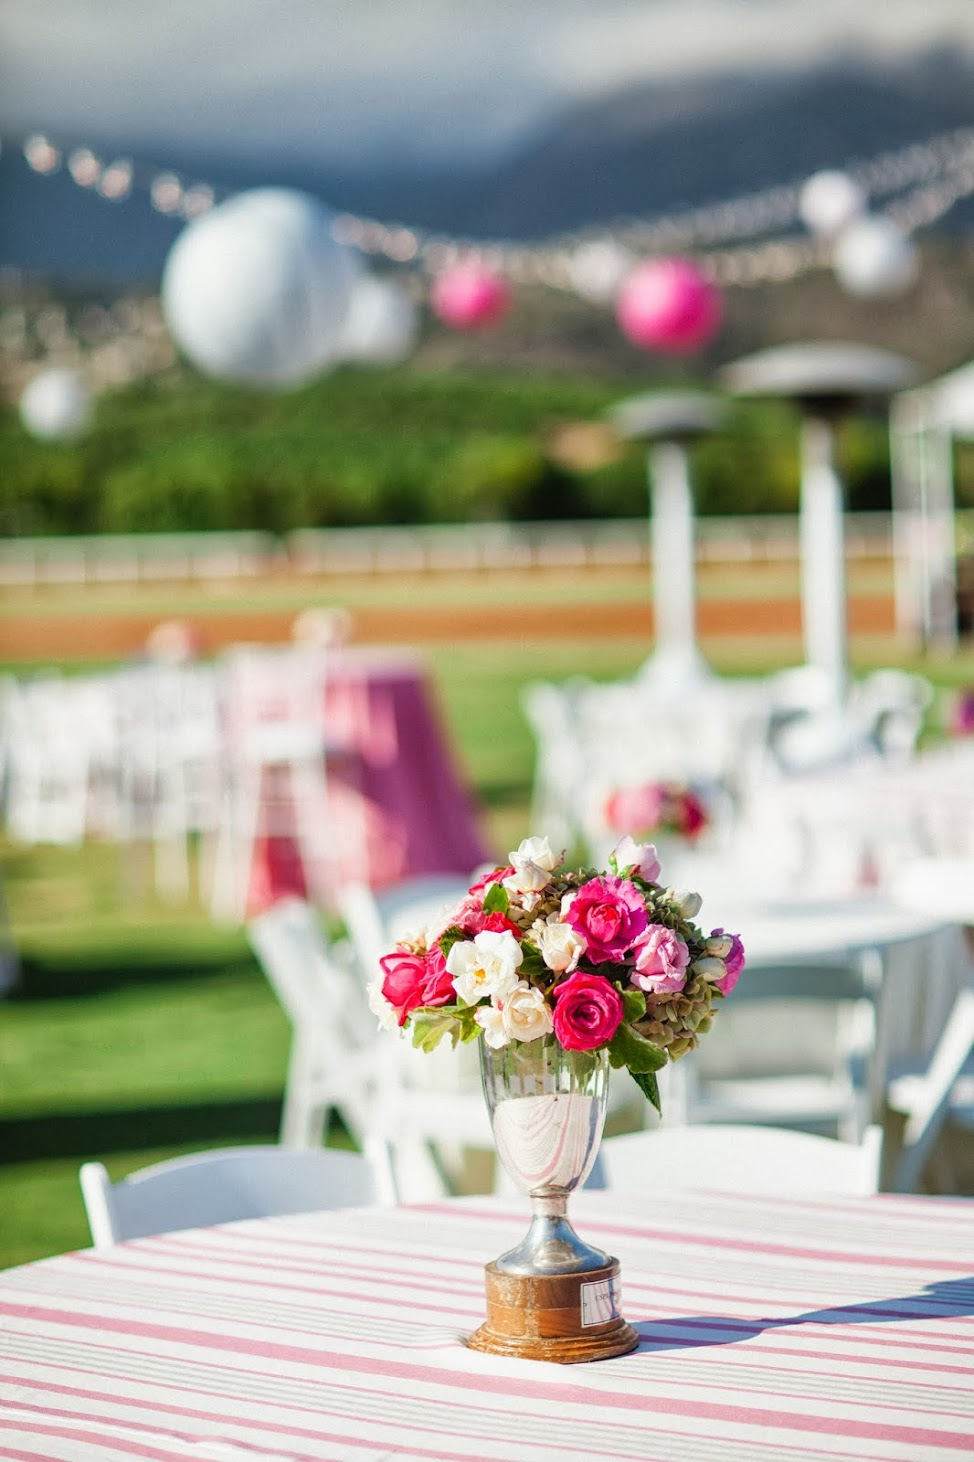 www.FeliciEvents | Pink Polo Party | Funraising Event | Felici Fundraiser | Polo Theme | Clarissa Koenig Photography |  Pink Flowers | Pink Lanterns